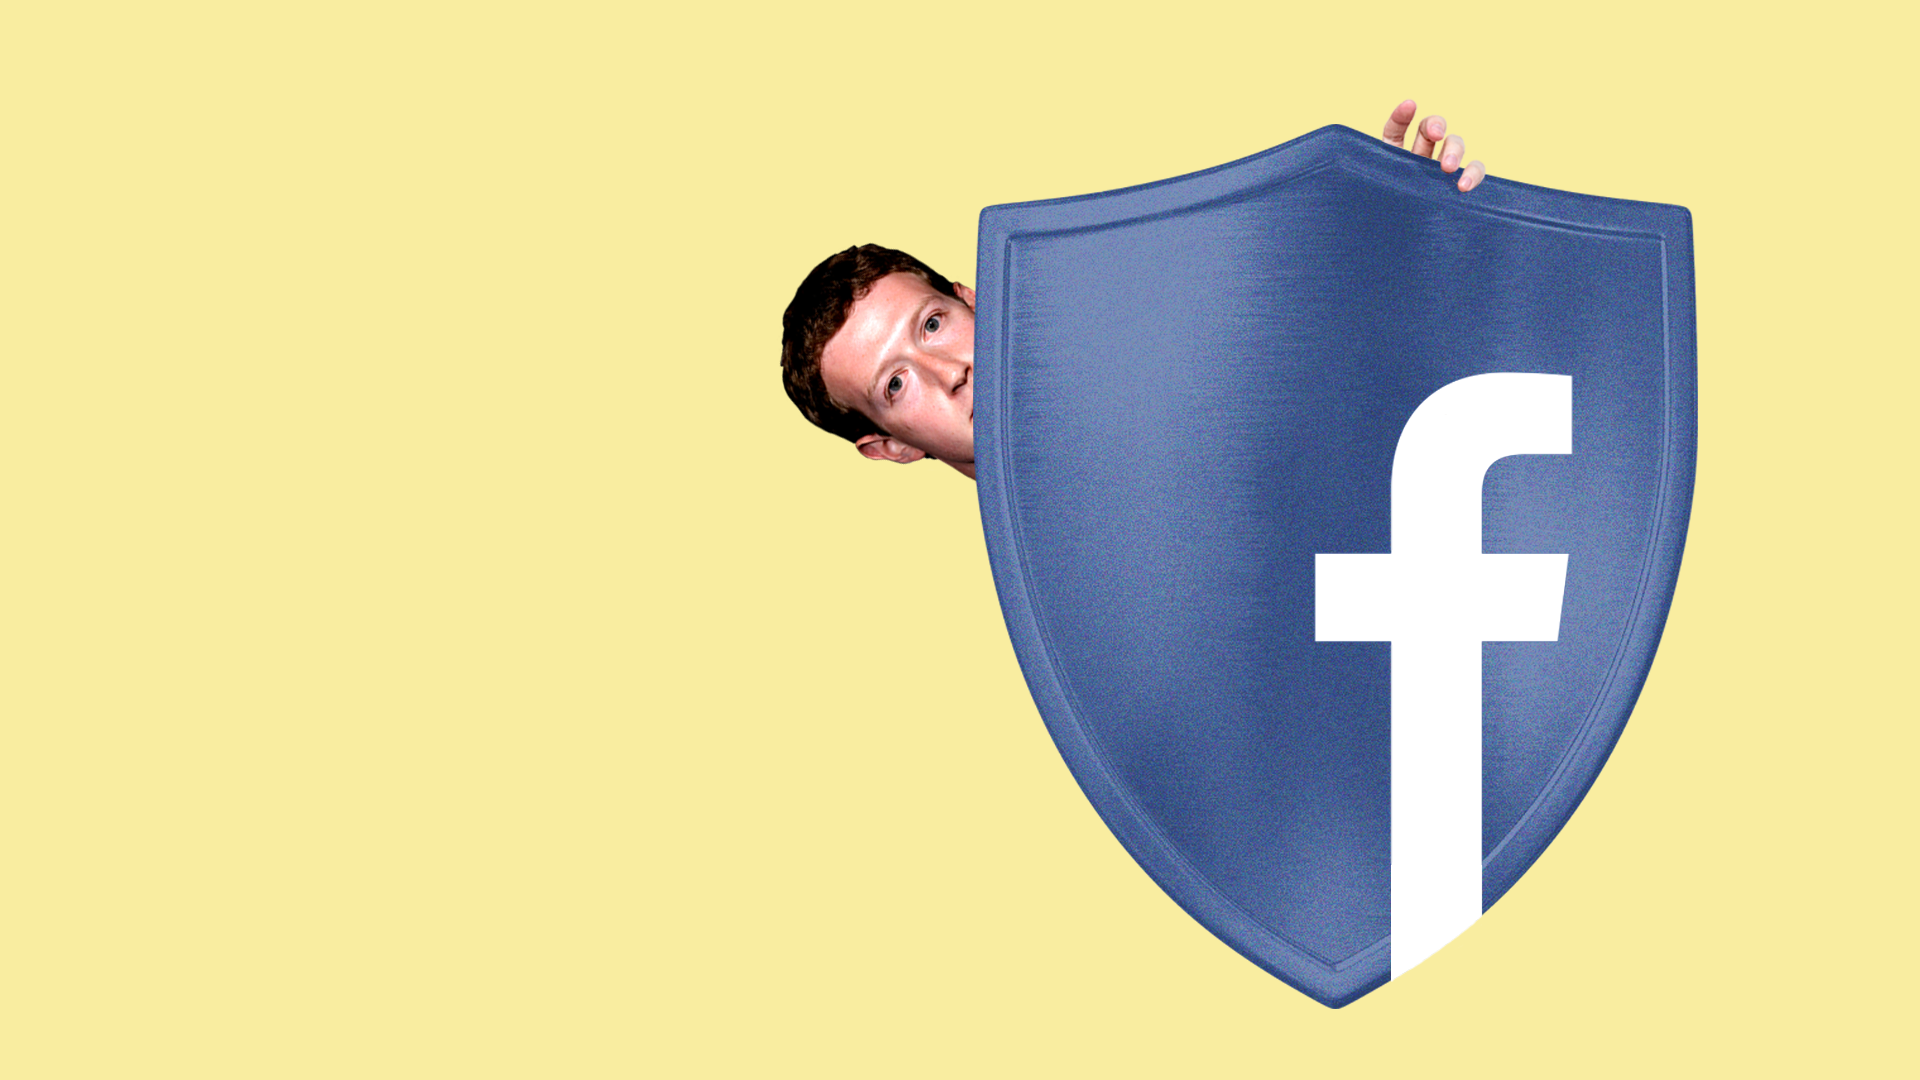 Illustration of Mark Zuckerberg hiding behind a shield with the Facebook logo on it